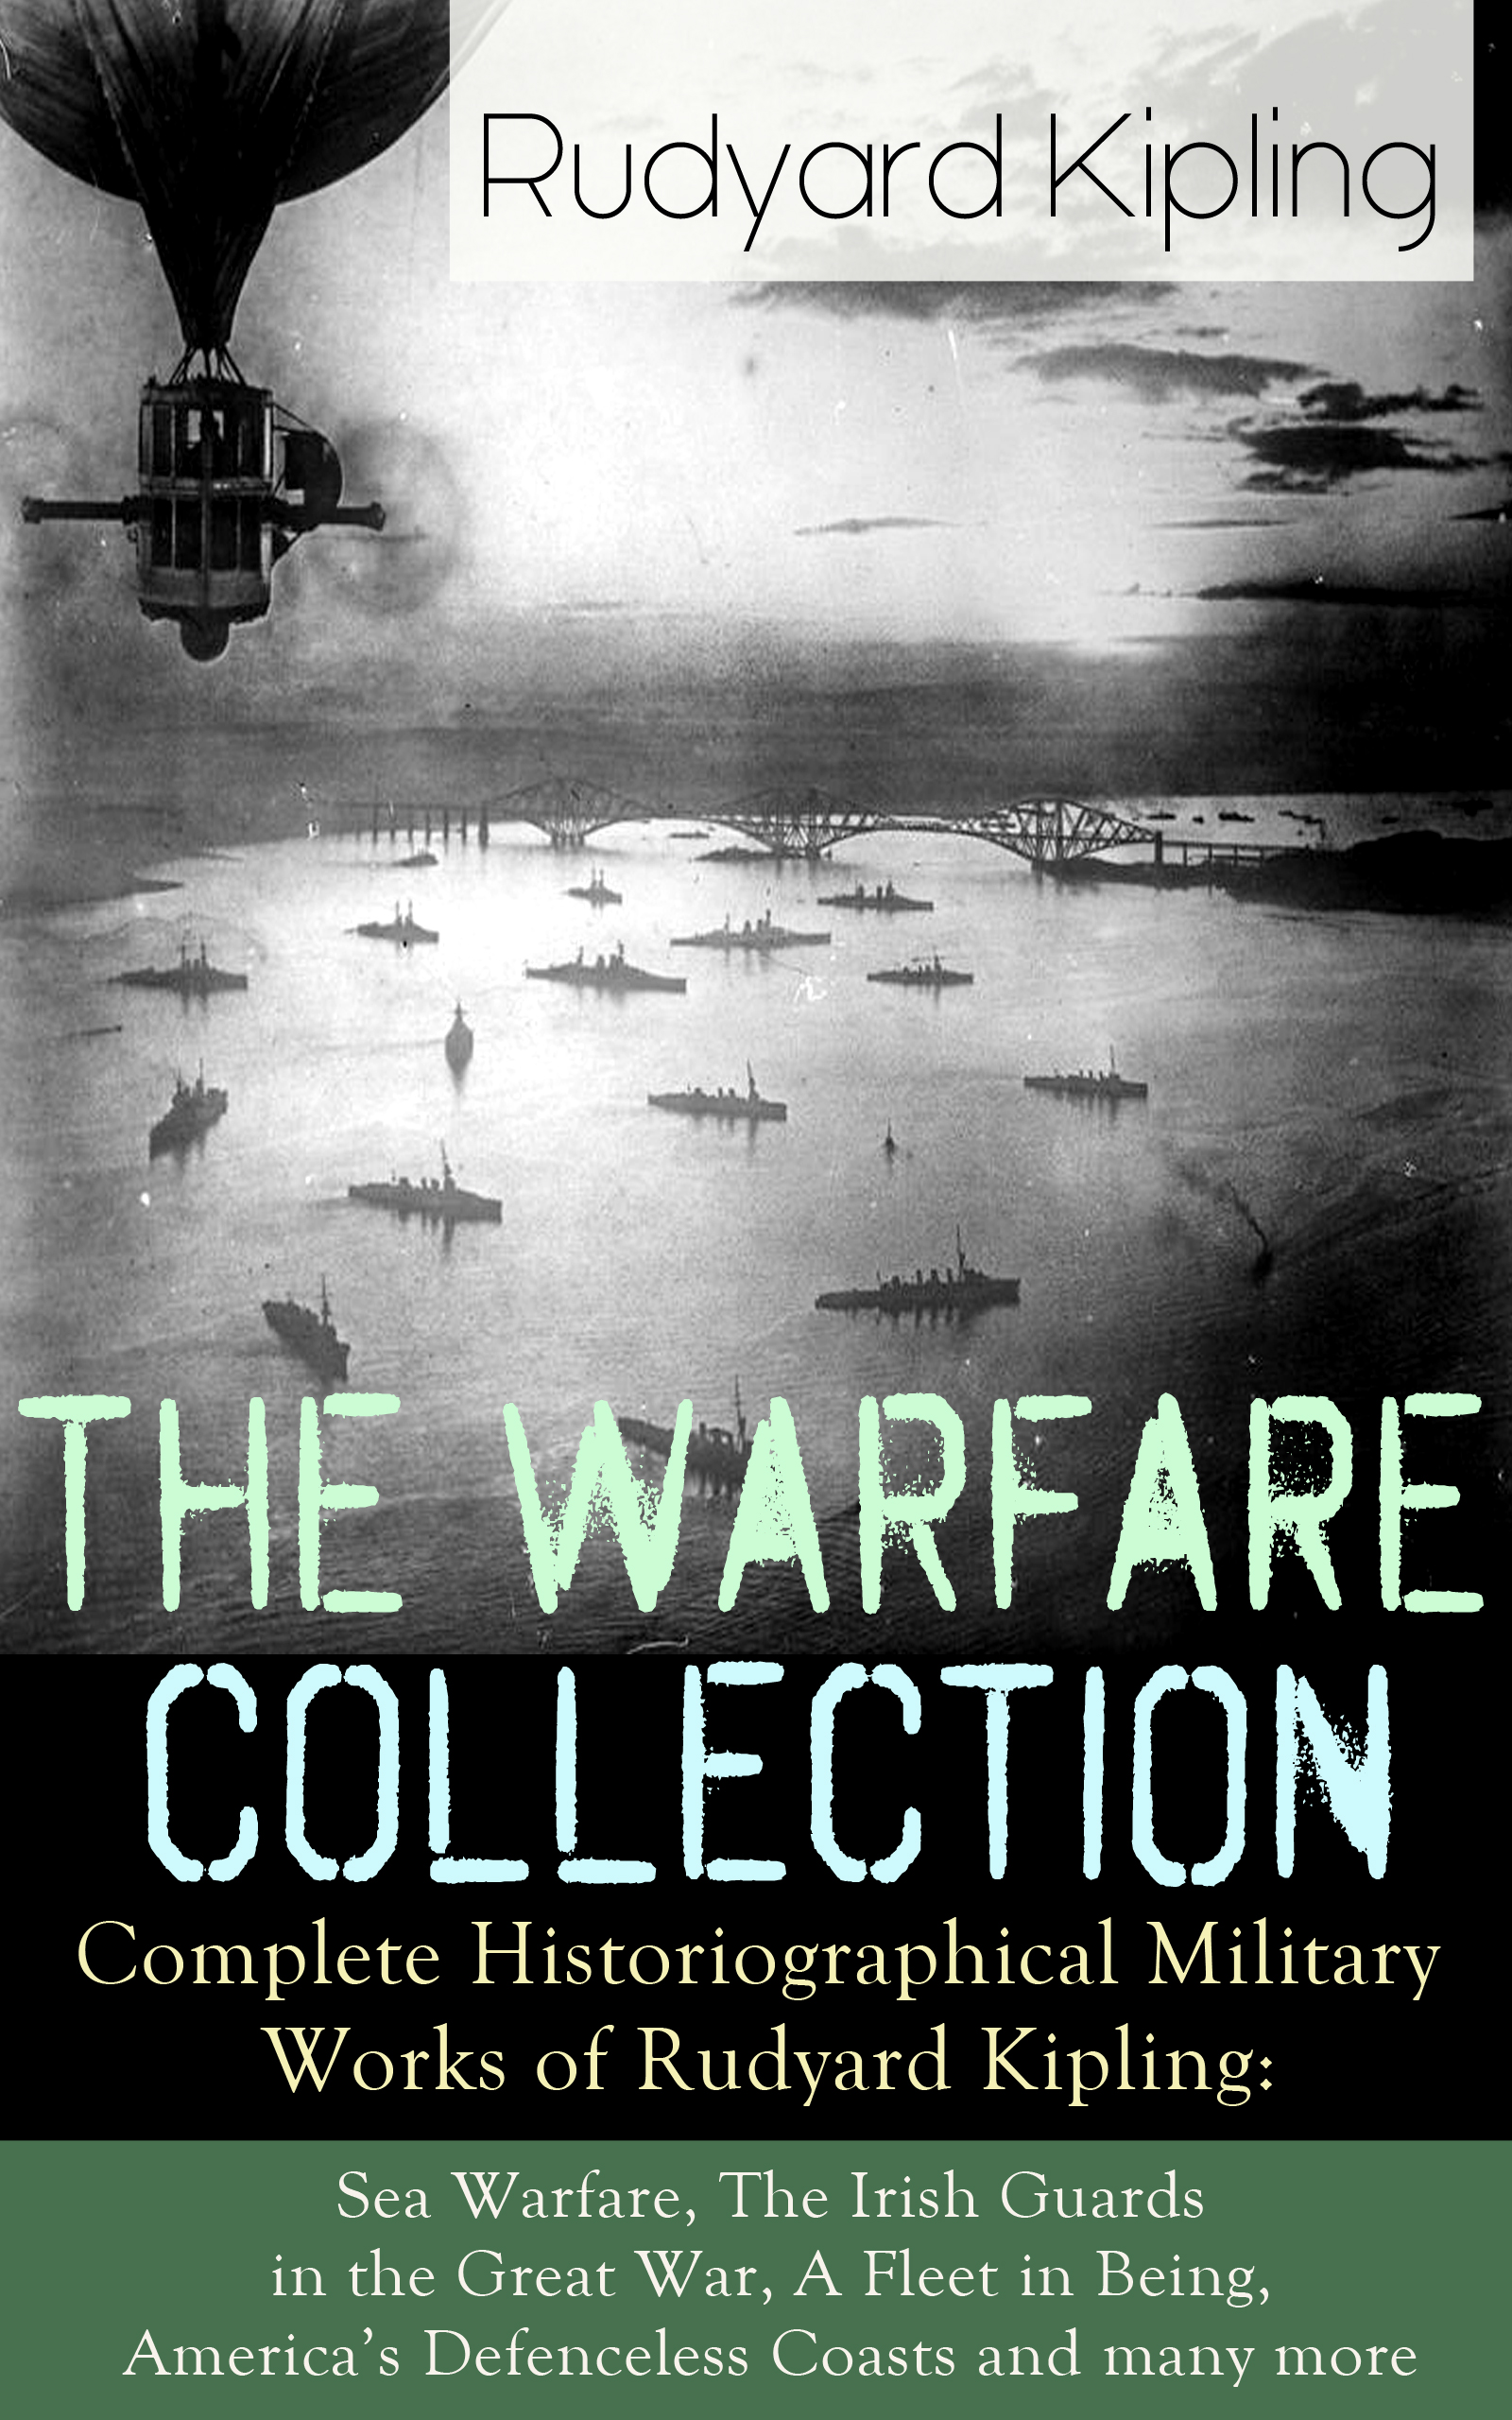 Rudyard Kipling The Warfare Collection - Complete Historiographical Military Works of Rudyard Kipling kipling платок